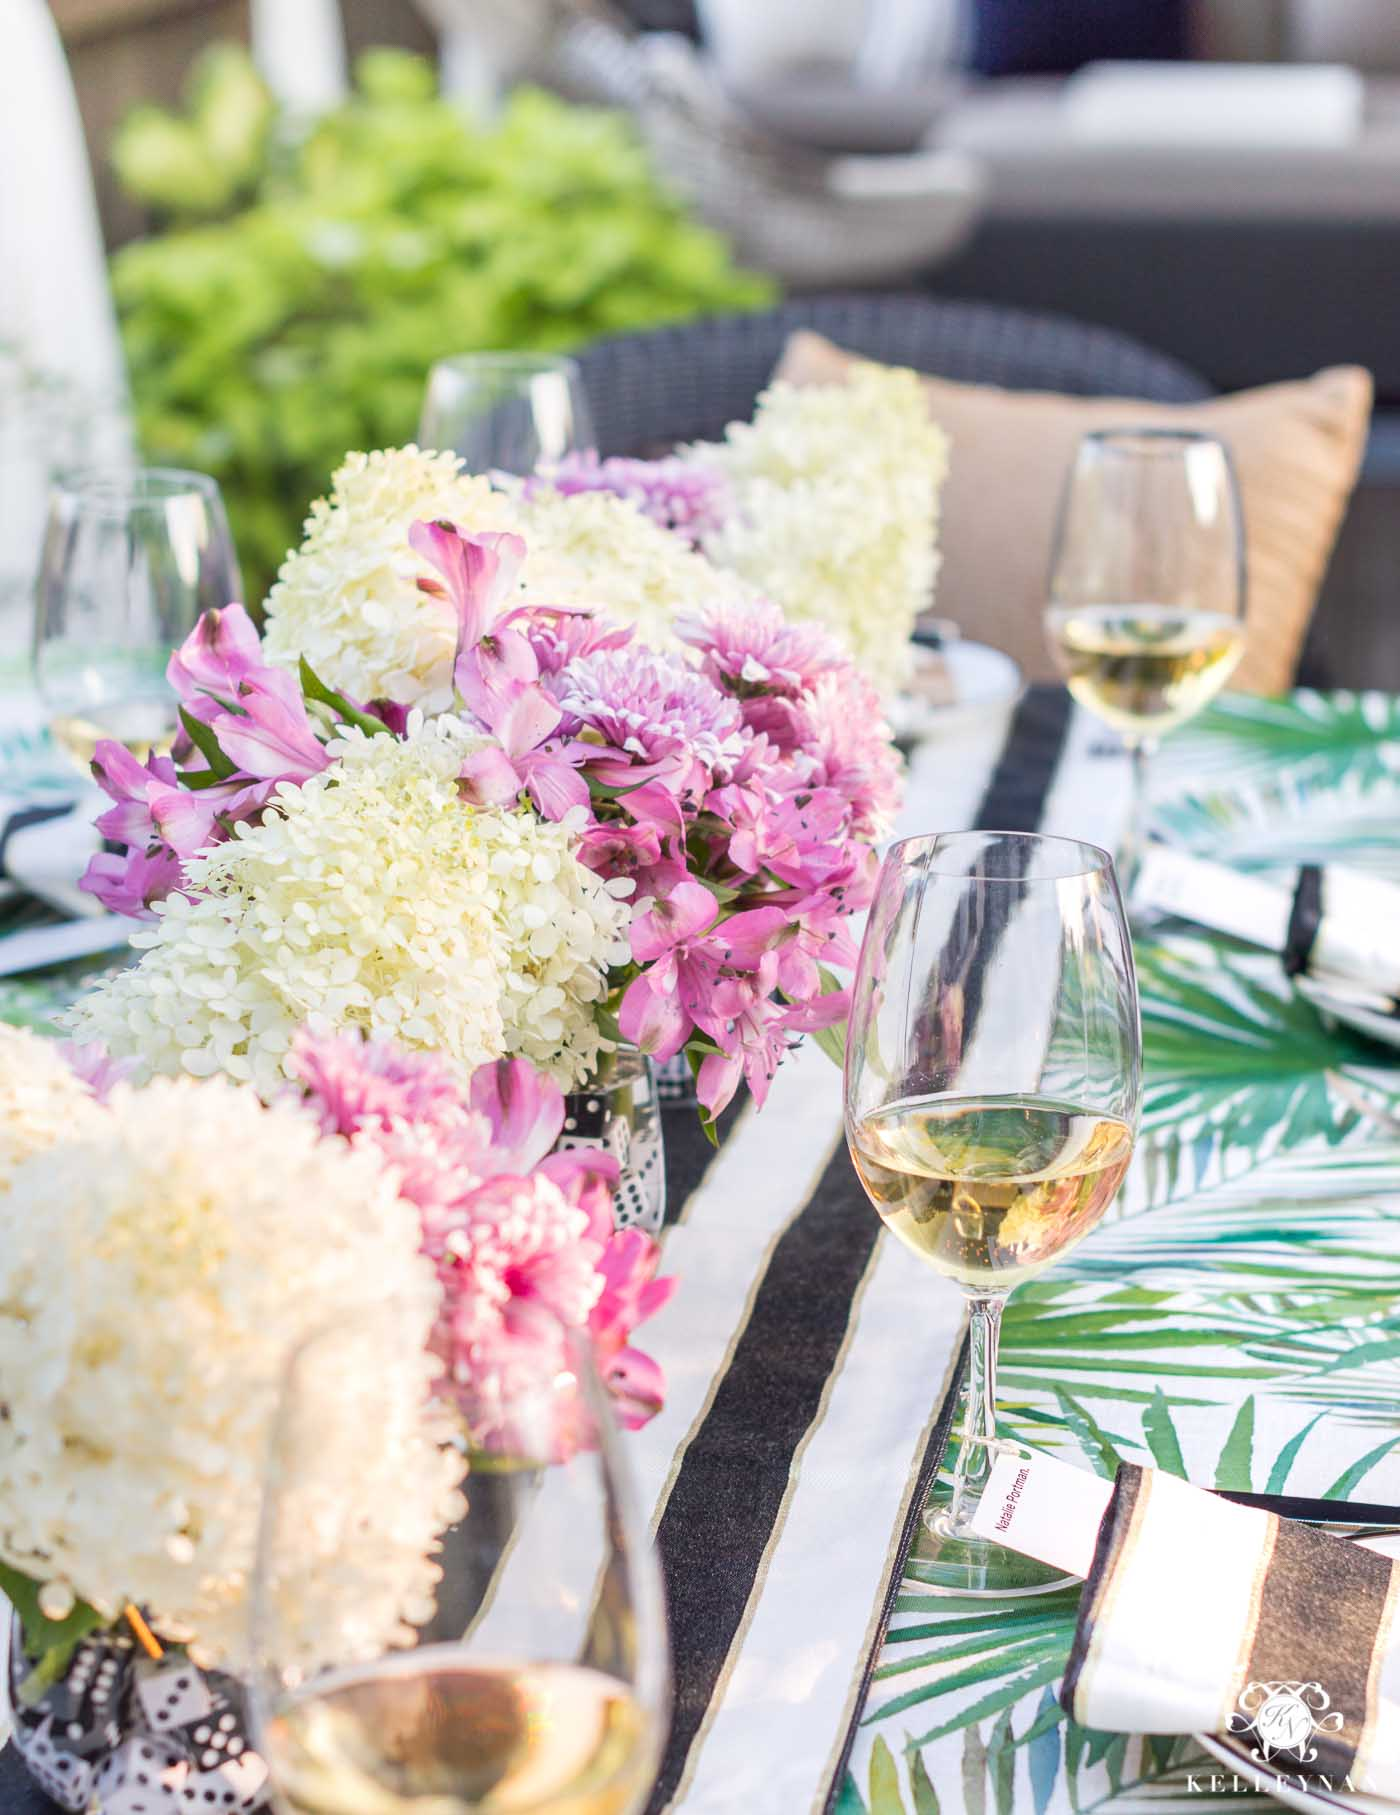 Easy outdoor dining floral arrangements for summer al fresco party